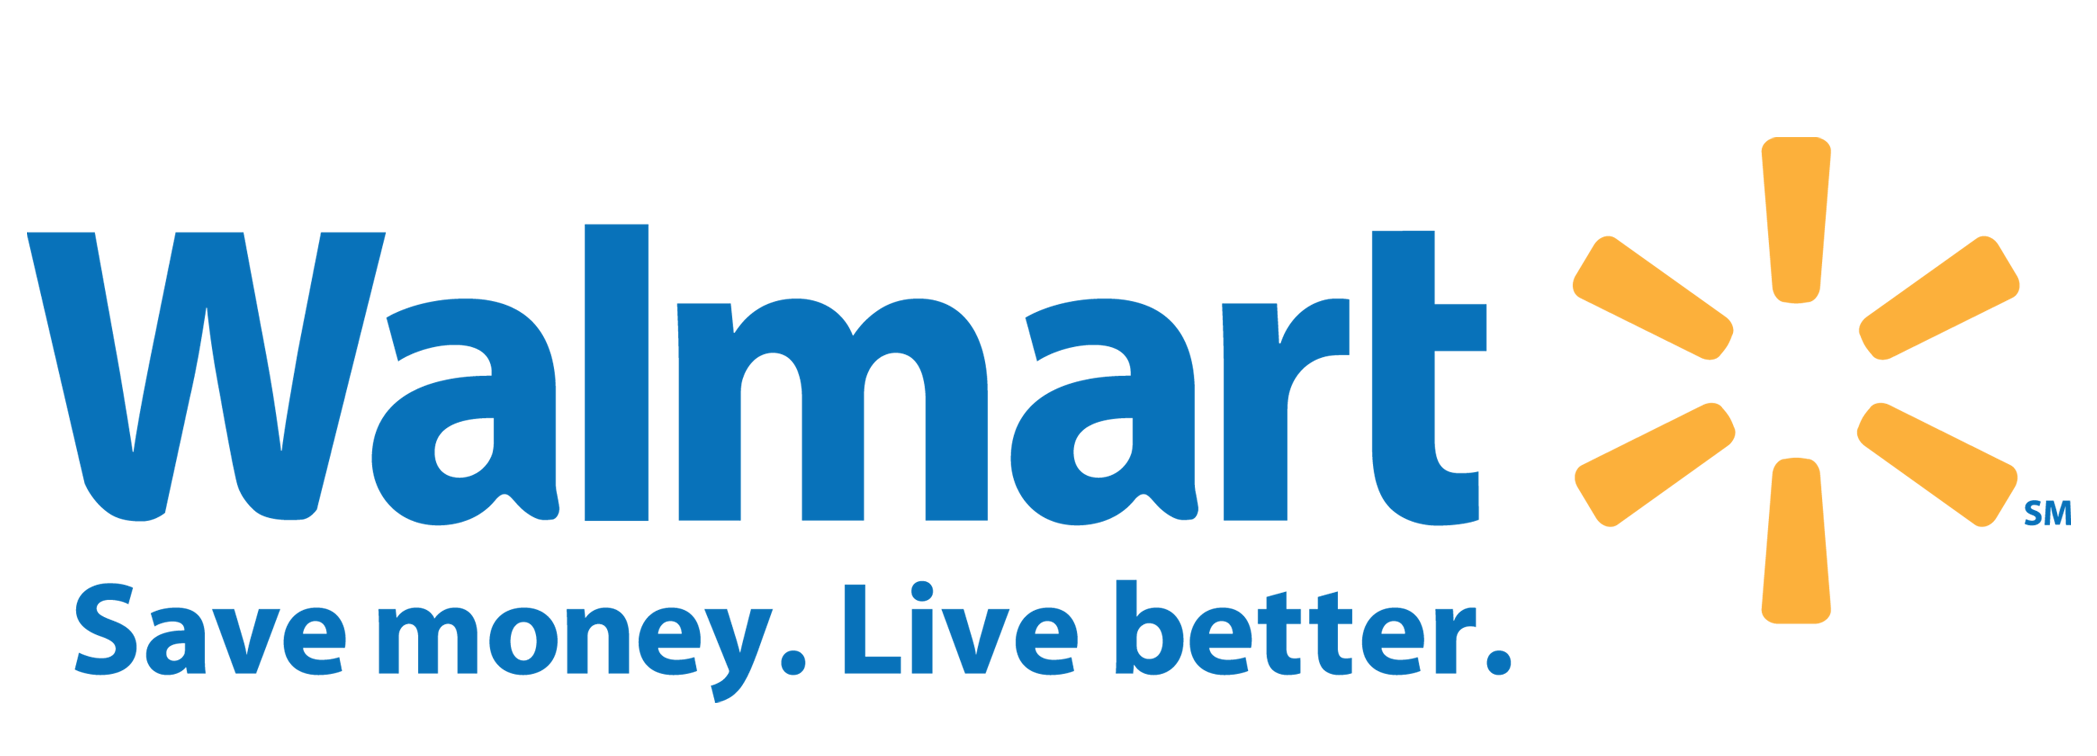 walmart logo slogan abilities without boundaries rh abilitieswithoutboundaries org old walmart logo font old walmart logo font